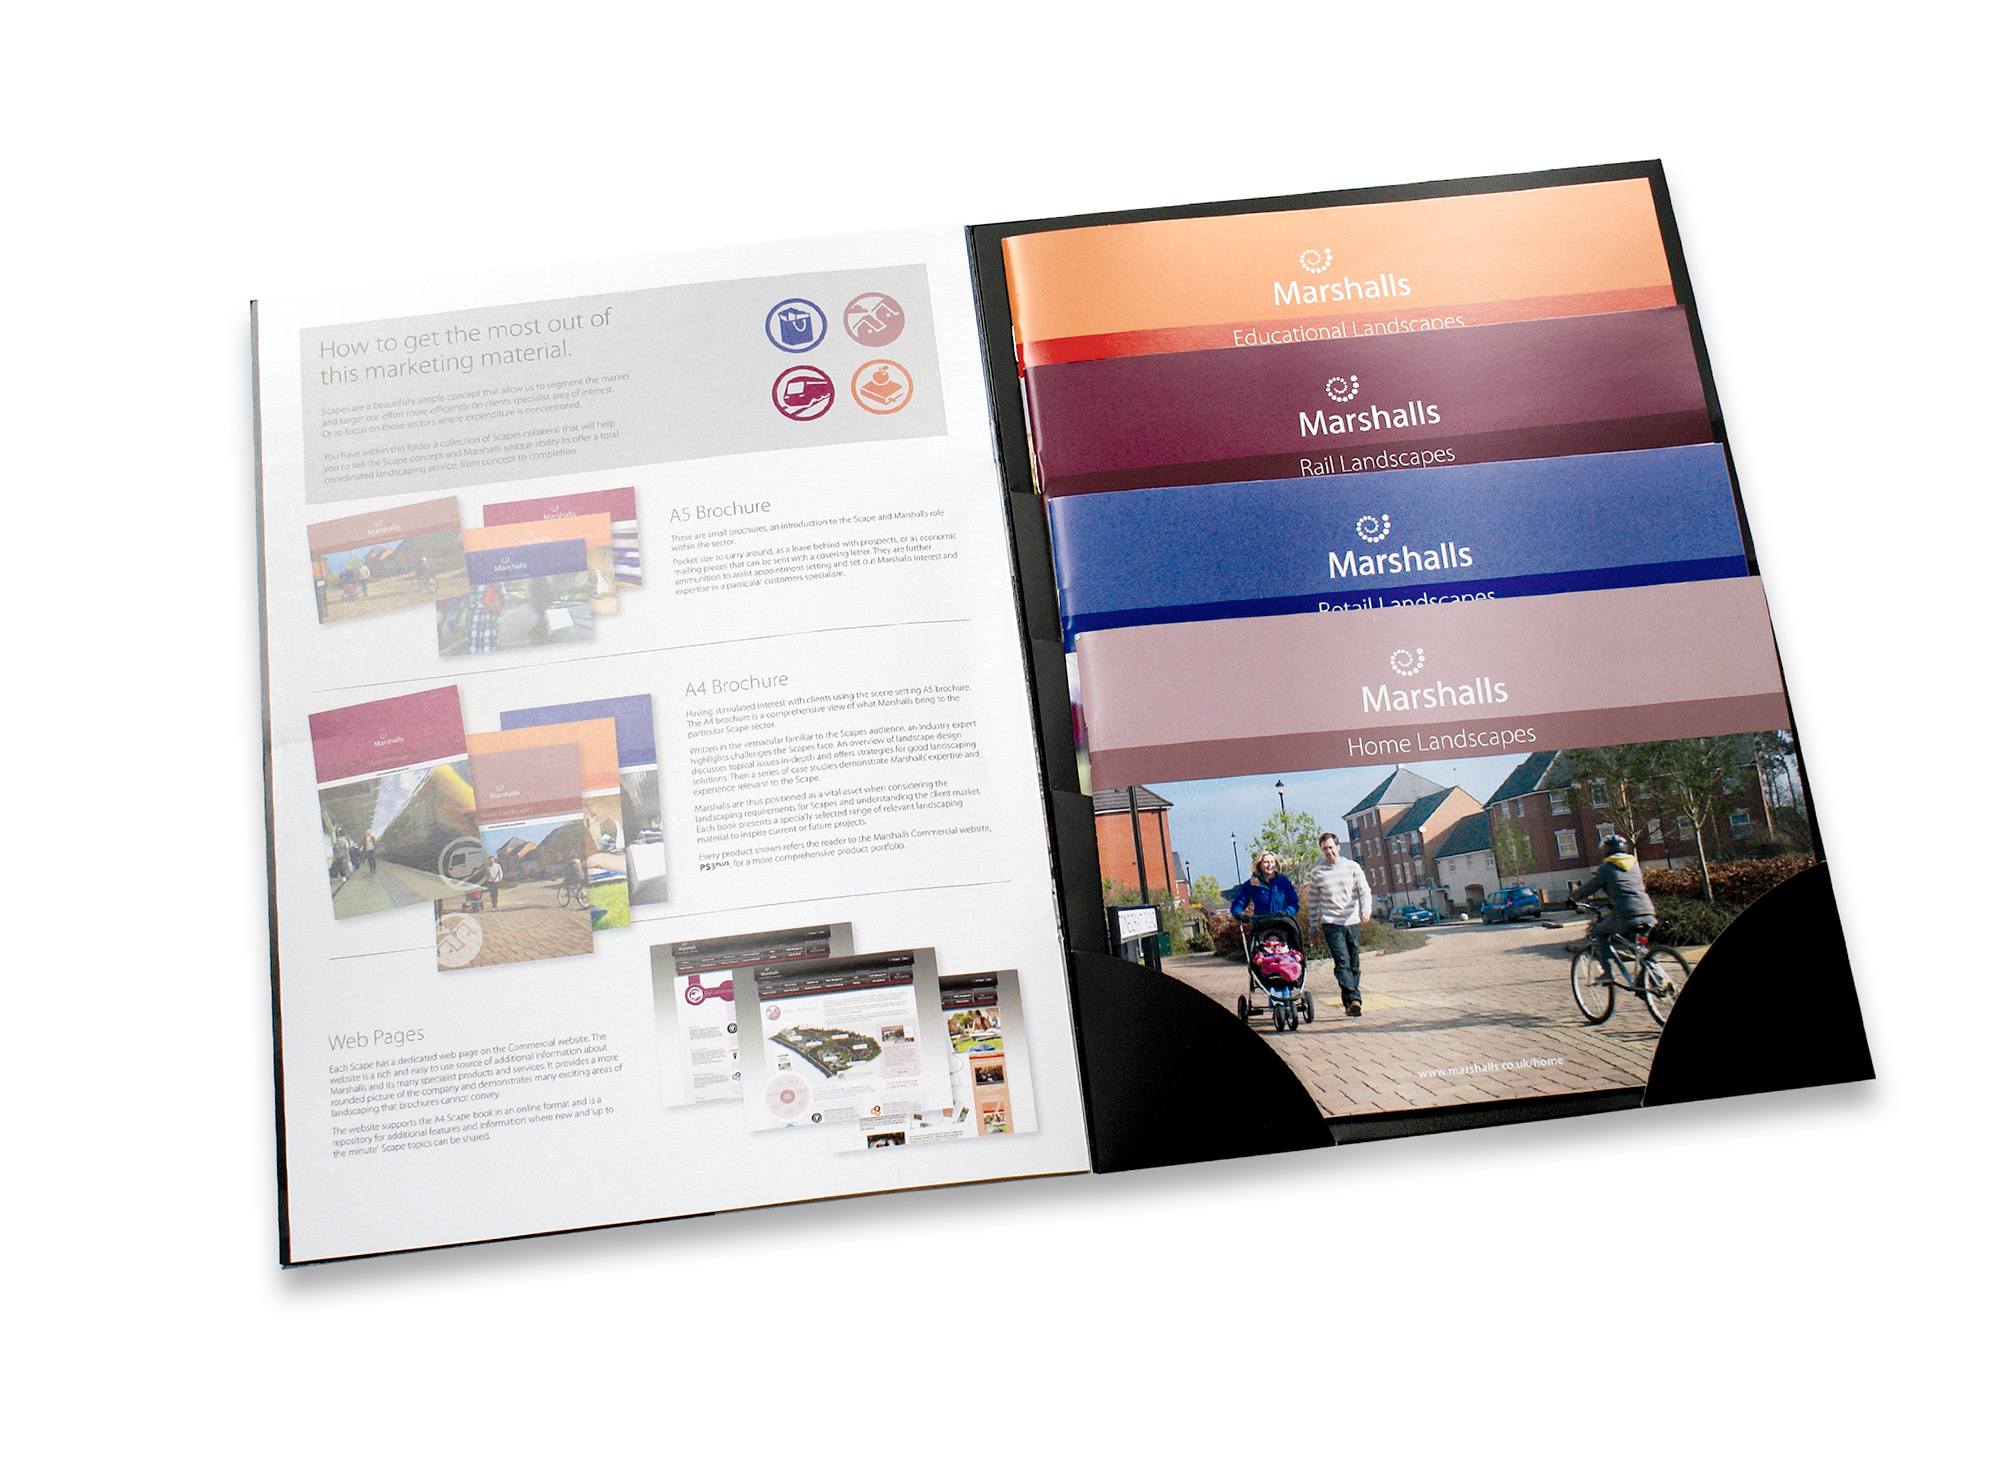 Marshalls Scapes Booklets